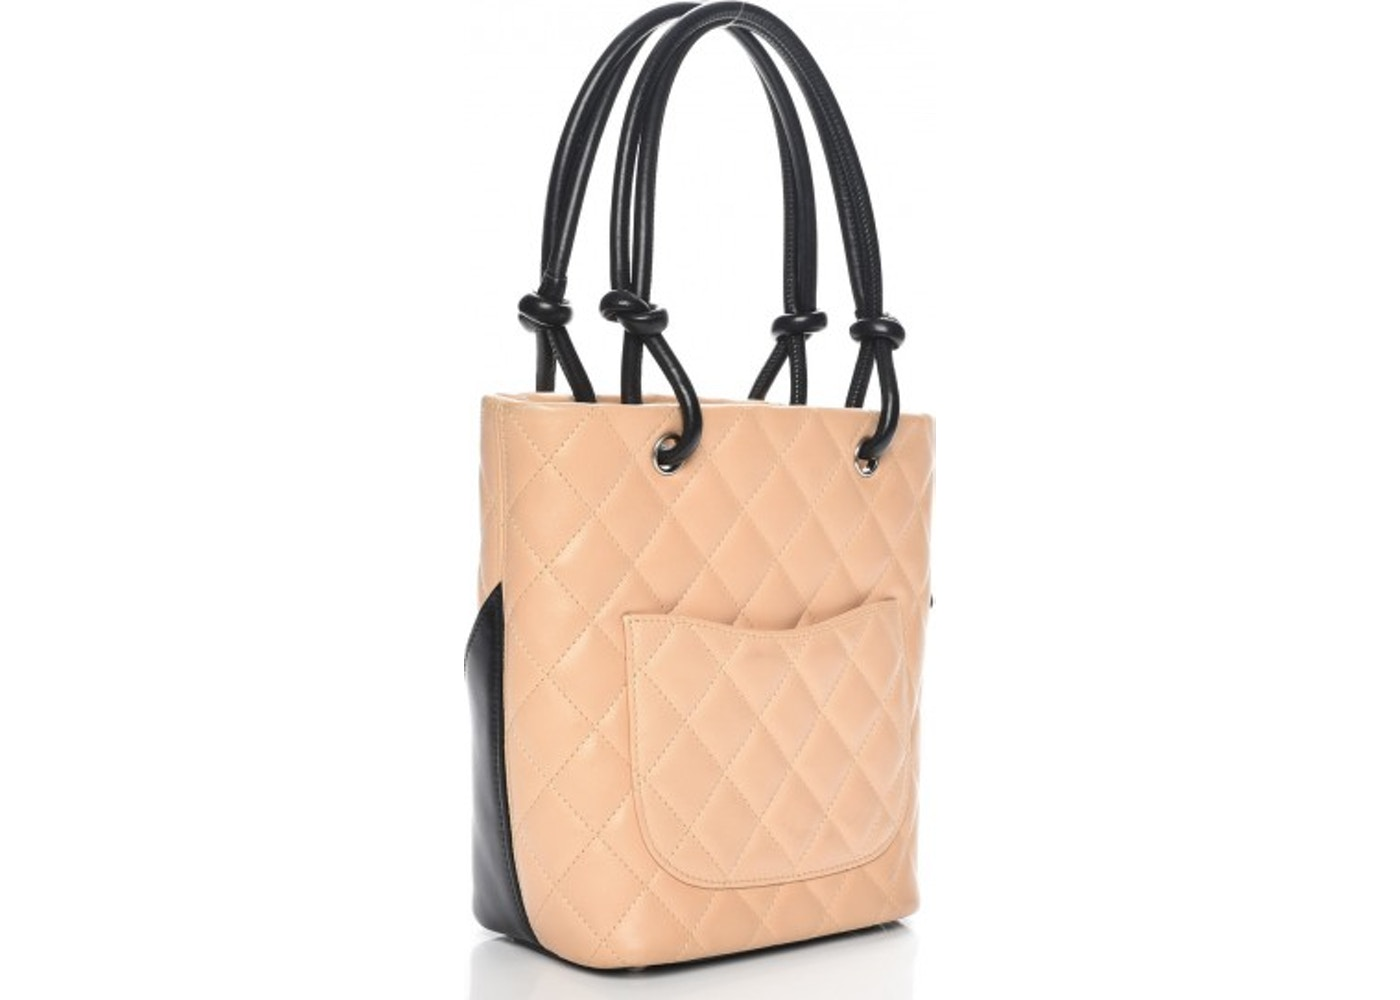 b3887fa59dc5 Chanel Cambon Ligne Tote Quilted Diamond Small Beige/Black